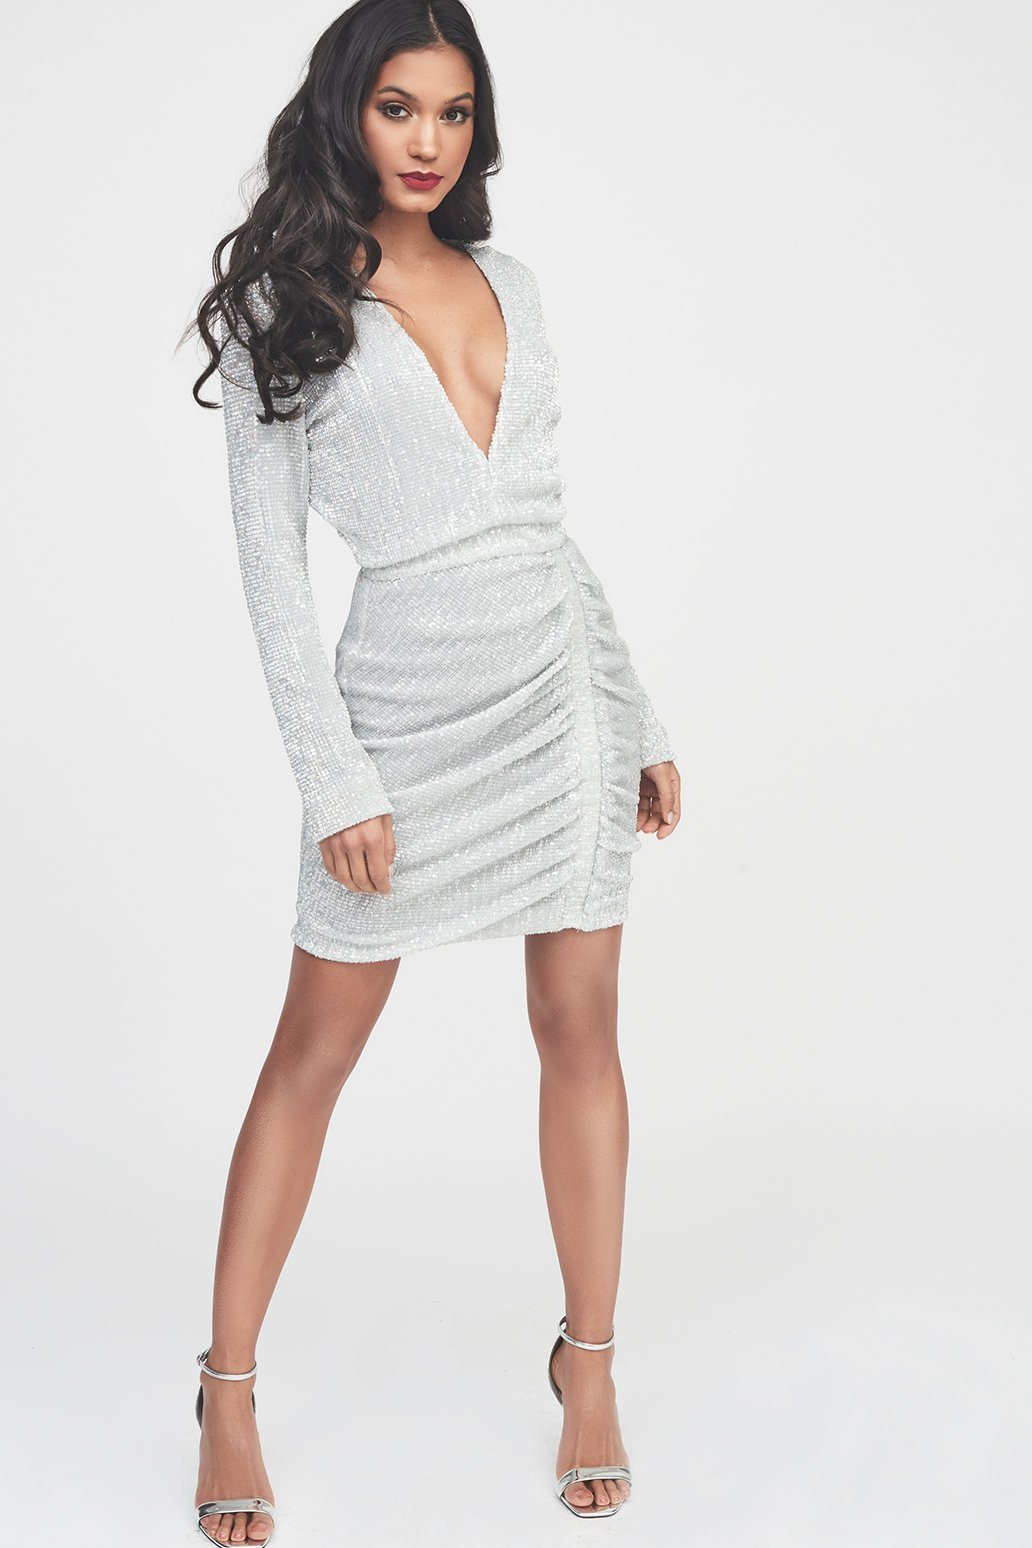 Silver Iridescent Sequin Mini Dress